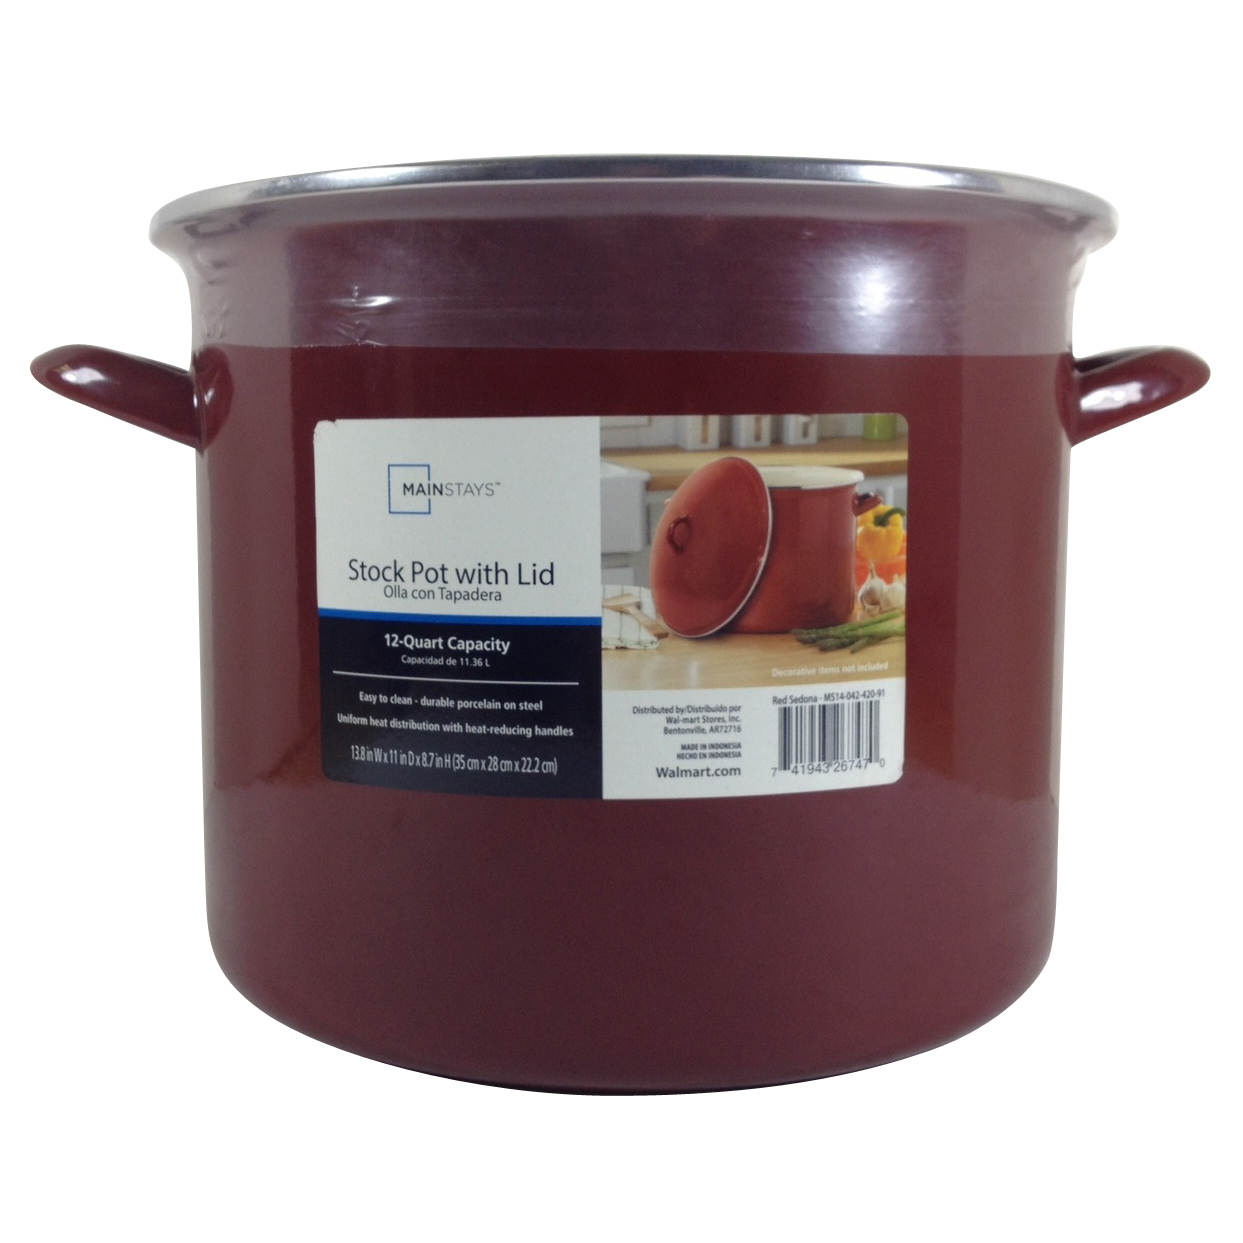 Mainstays 12-Quart Stock Pot, Red Sedona